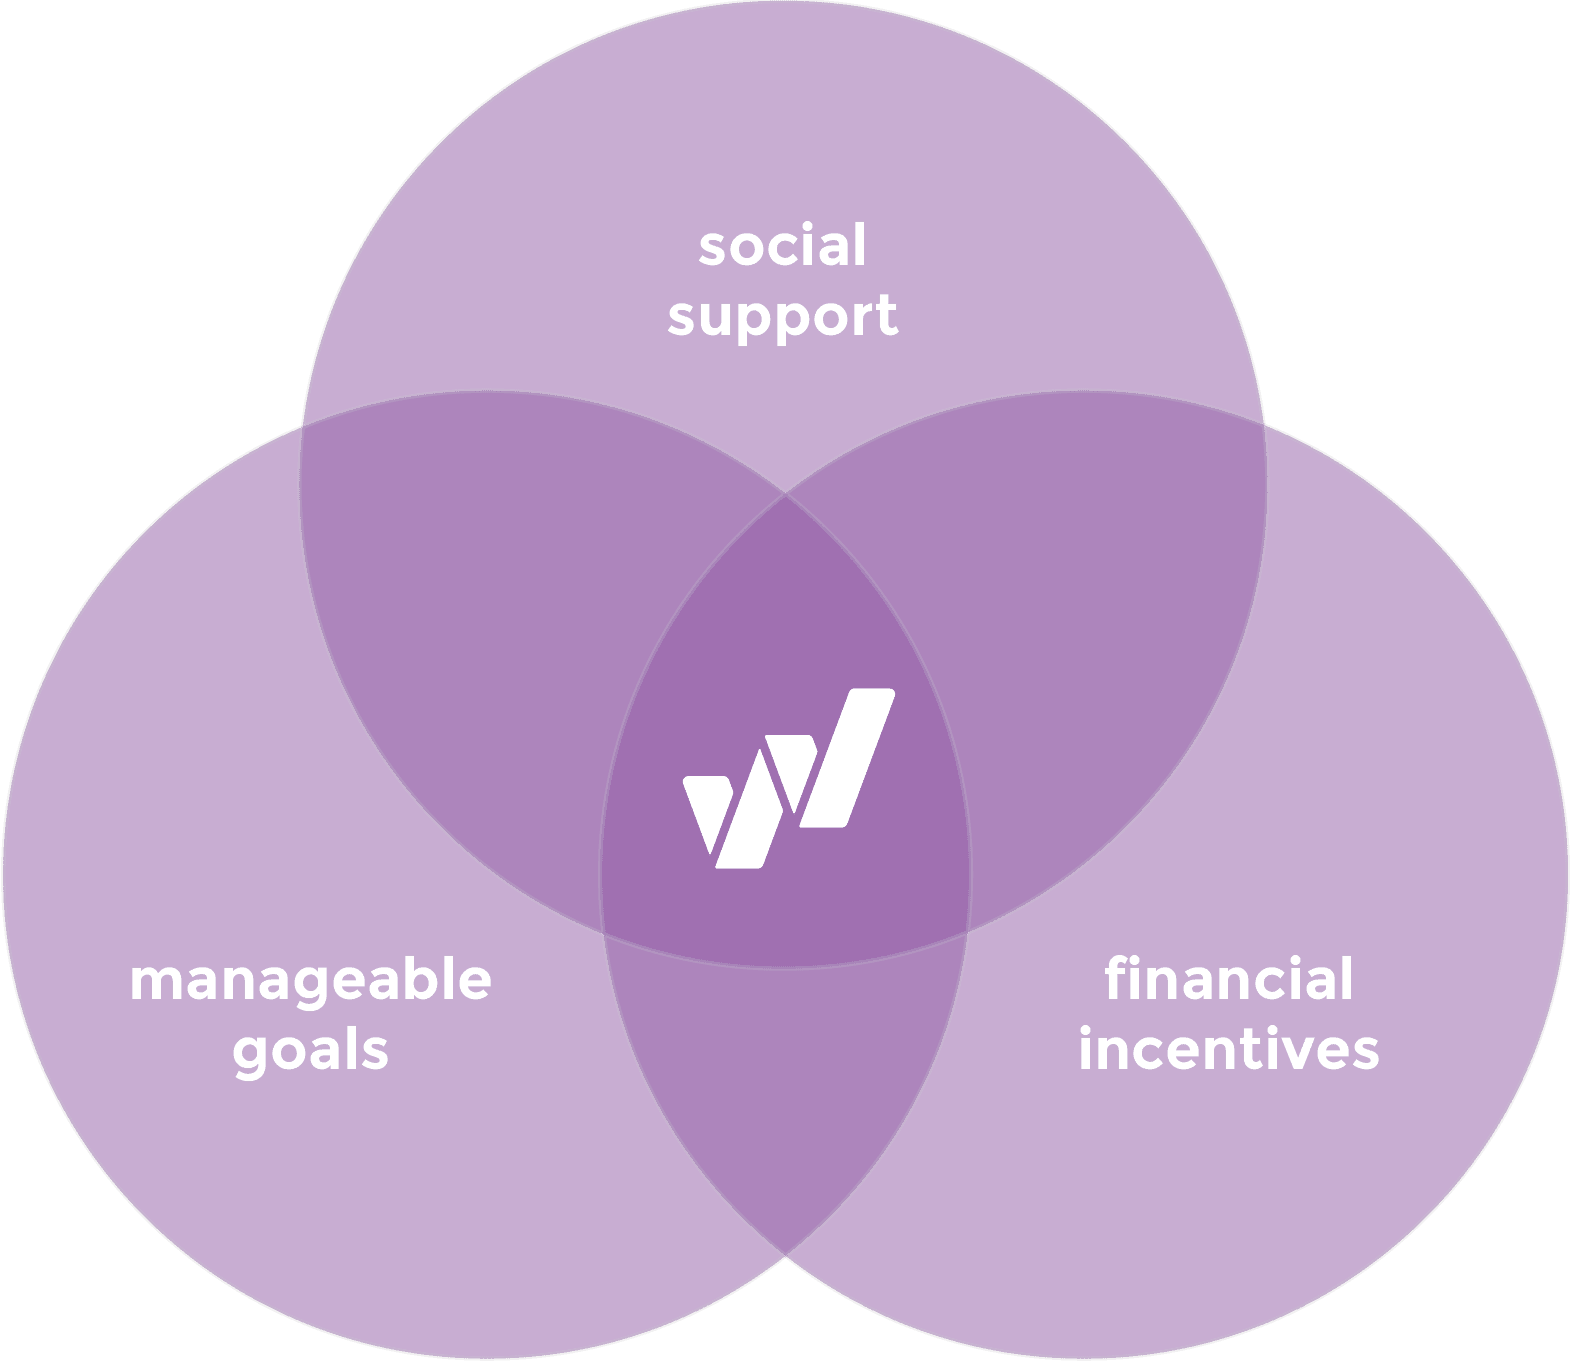 Venn diagram of Social Support, Manageable Goals, and Financial Incentive circles with the WayBetter logo in the center intersection.